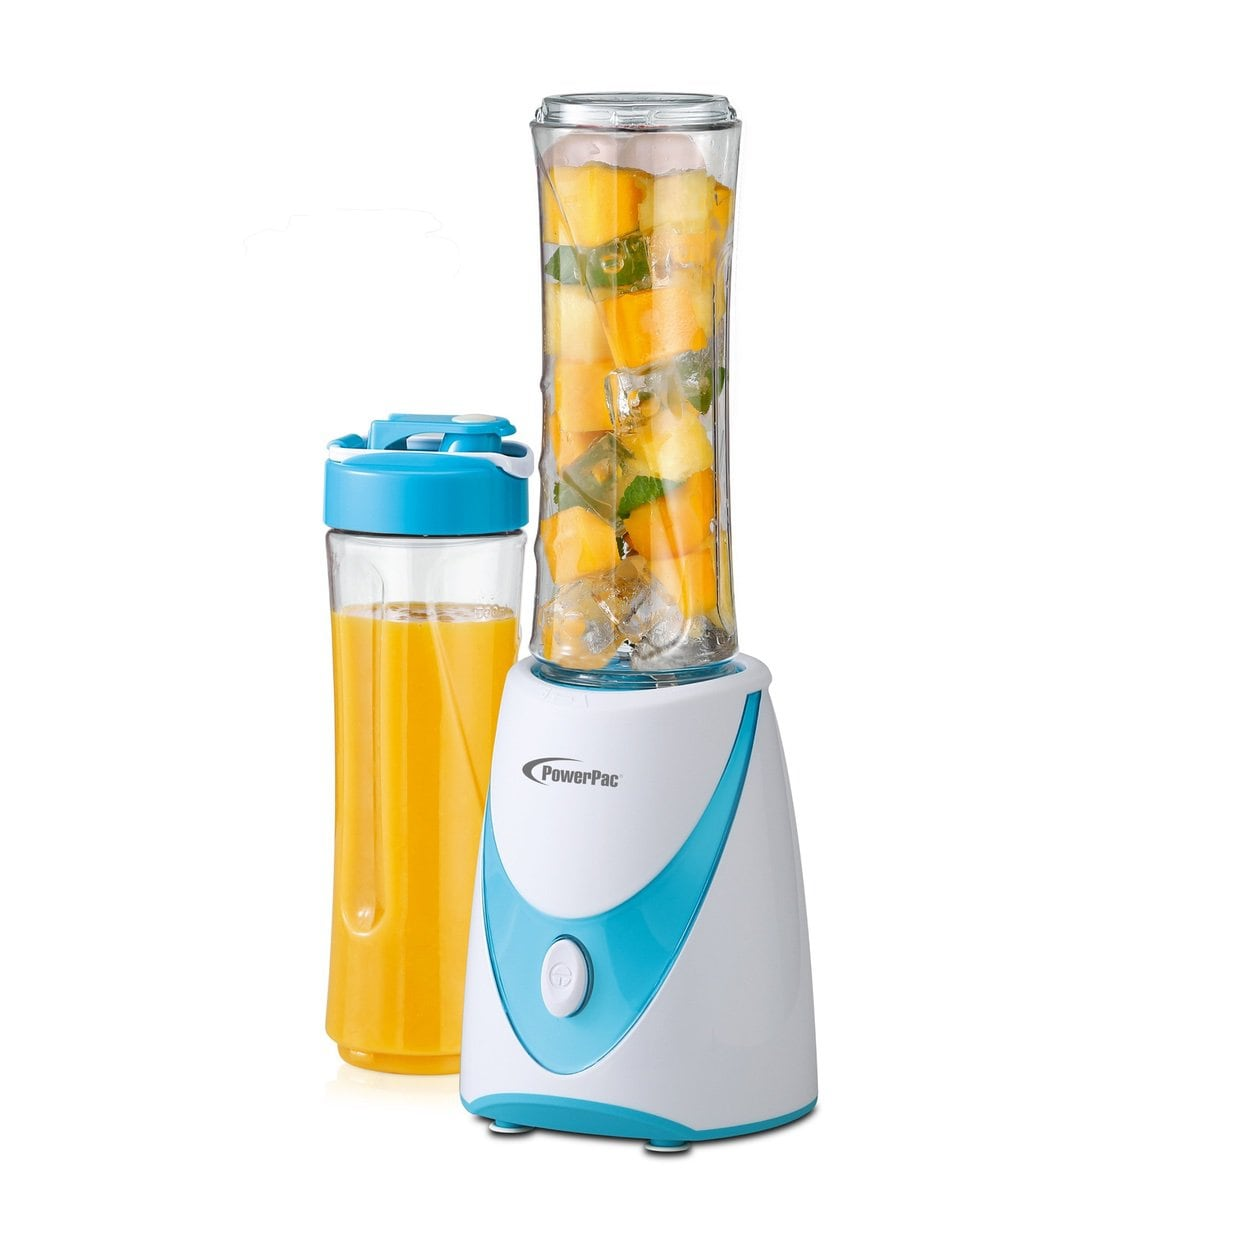 PowerPac Personal Juice Blender with 2X BPA Free Jugs (PPBL500)